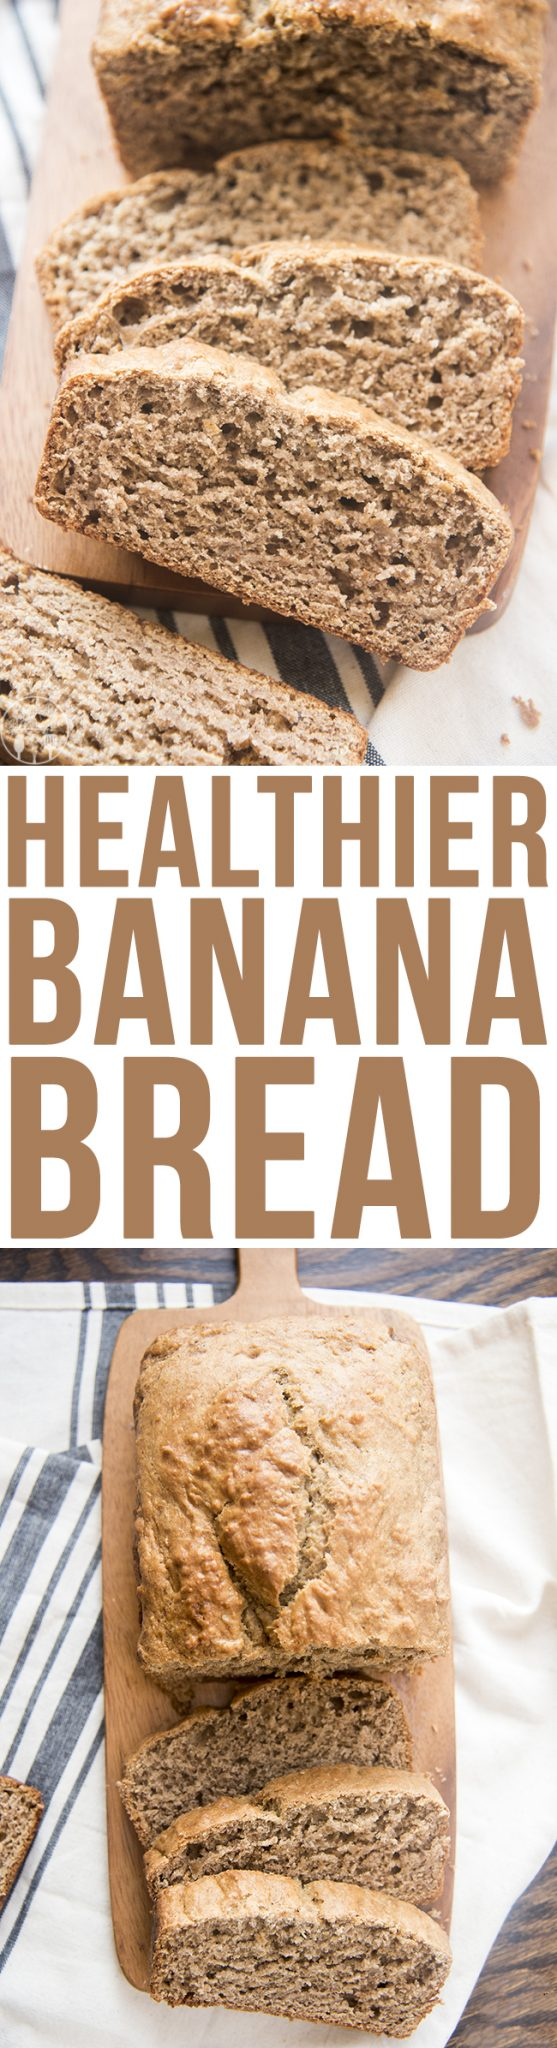 Healthier Banana Bread - This delicious banana bread is perfectly moist, packed full of flavor and made healthier with coconut oil, greek yogurt, and SPLENDA® Brown Sugar Blend.